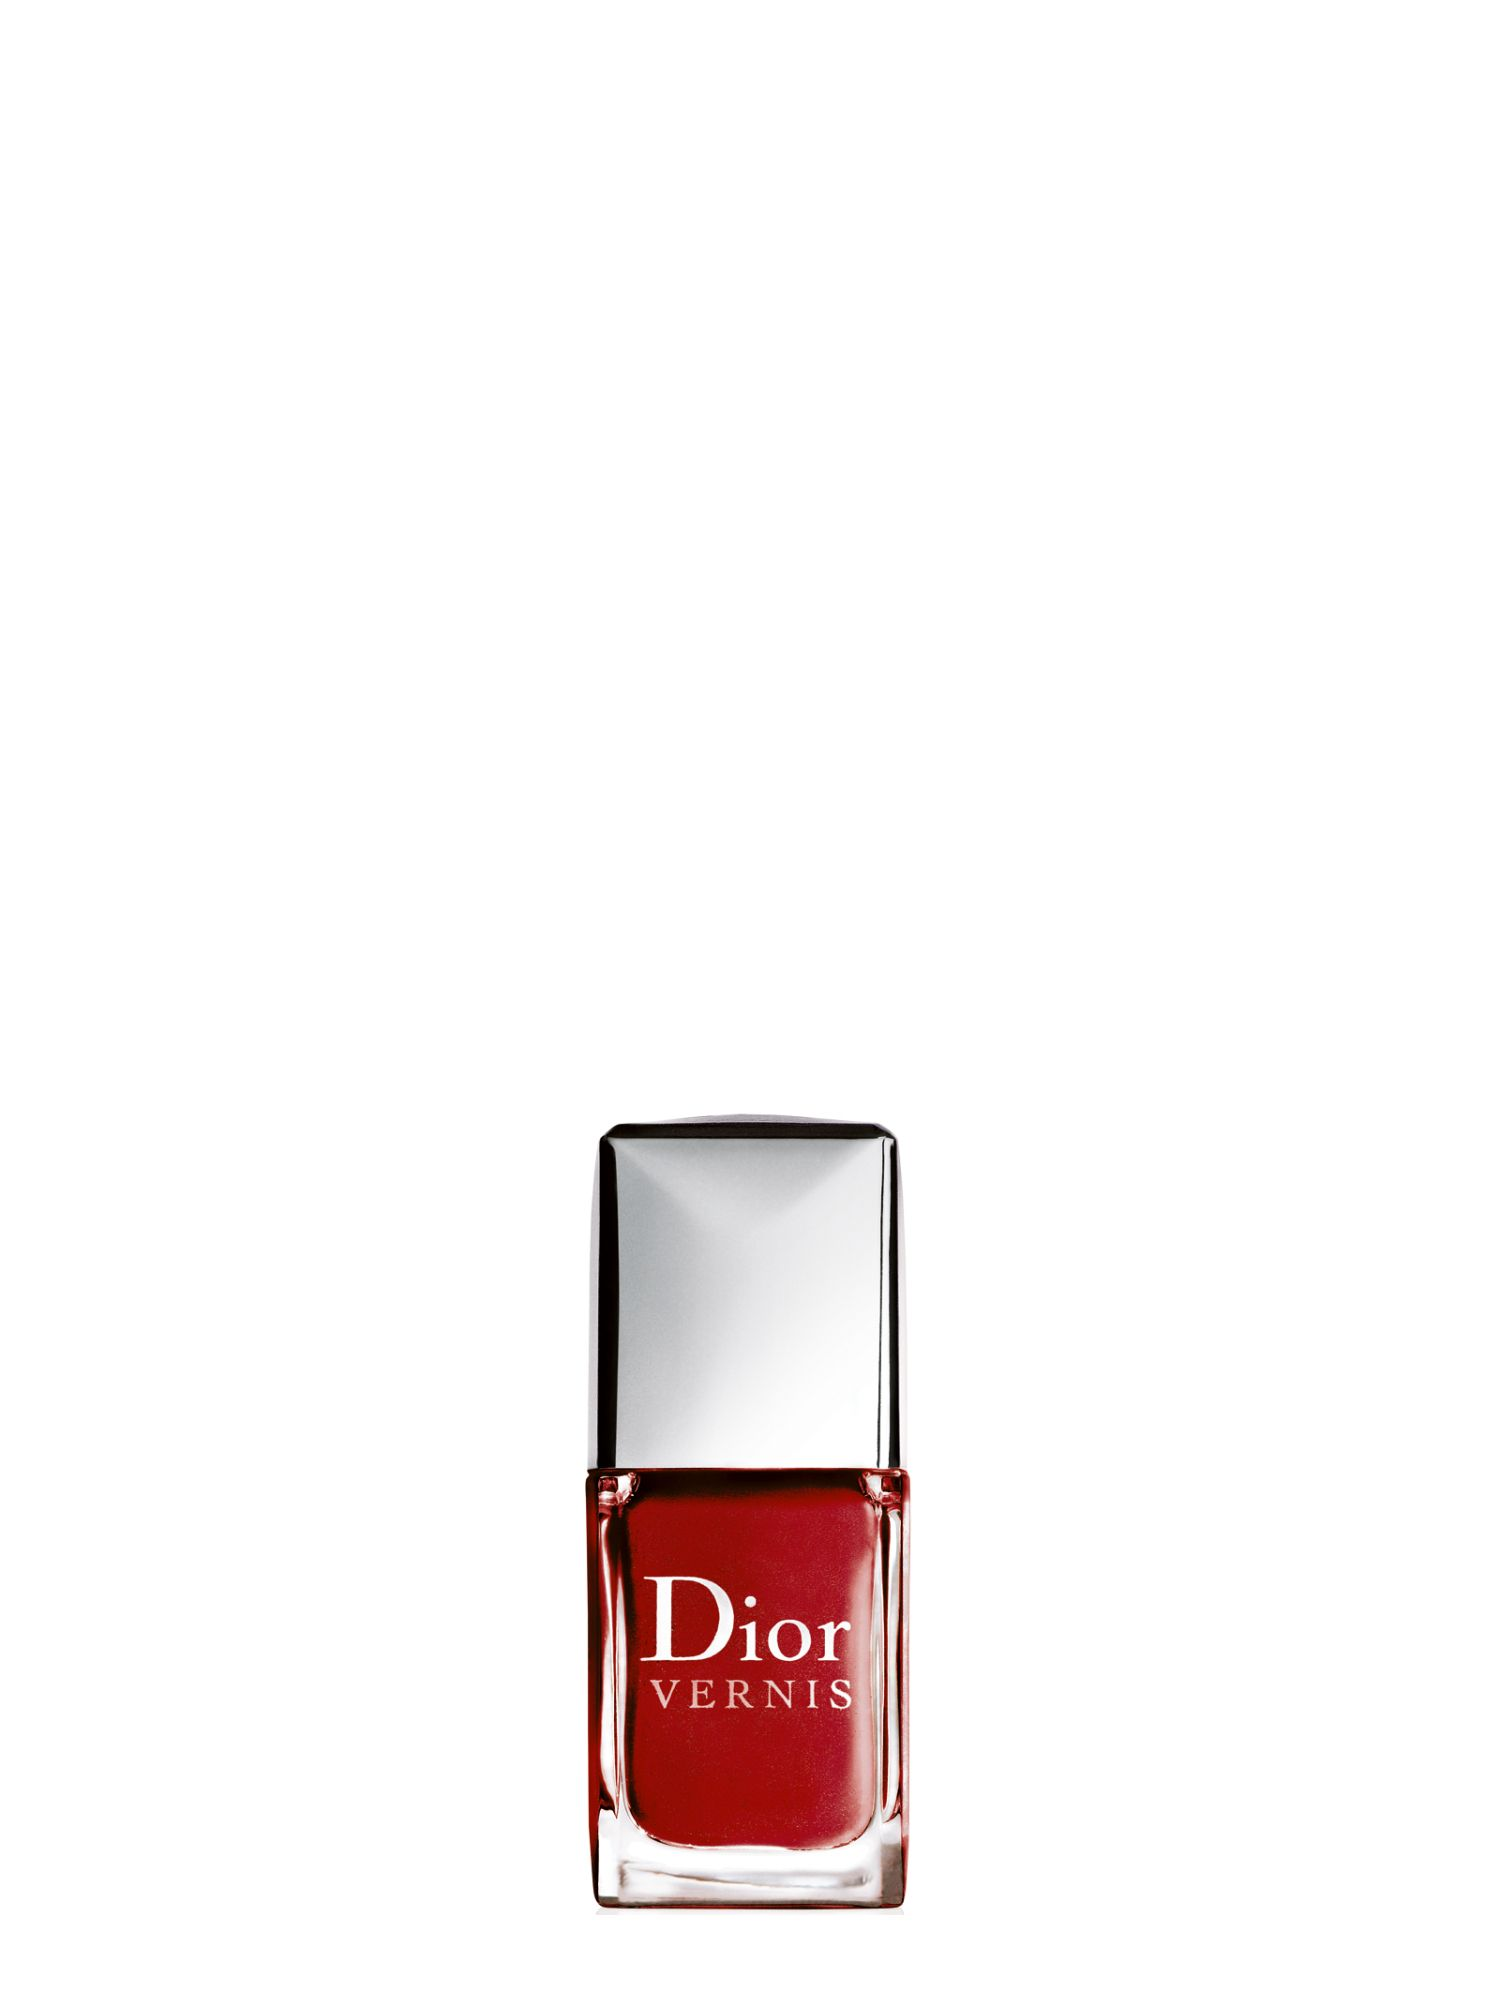 Dior Vernis Long-Wearing Nail Lacquer Poppy product image